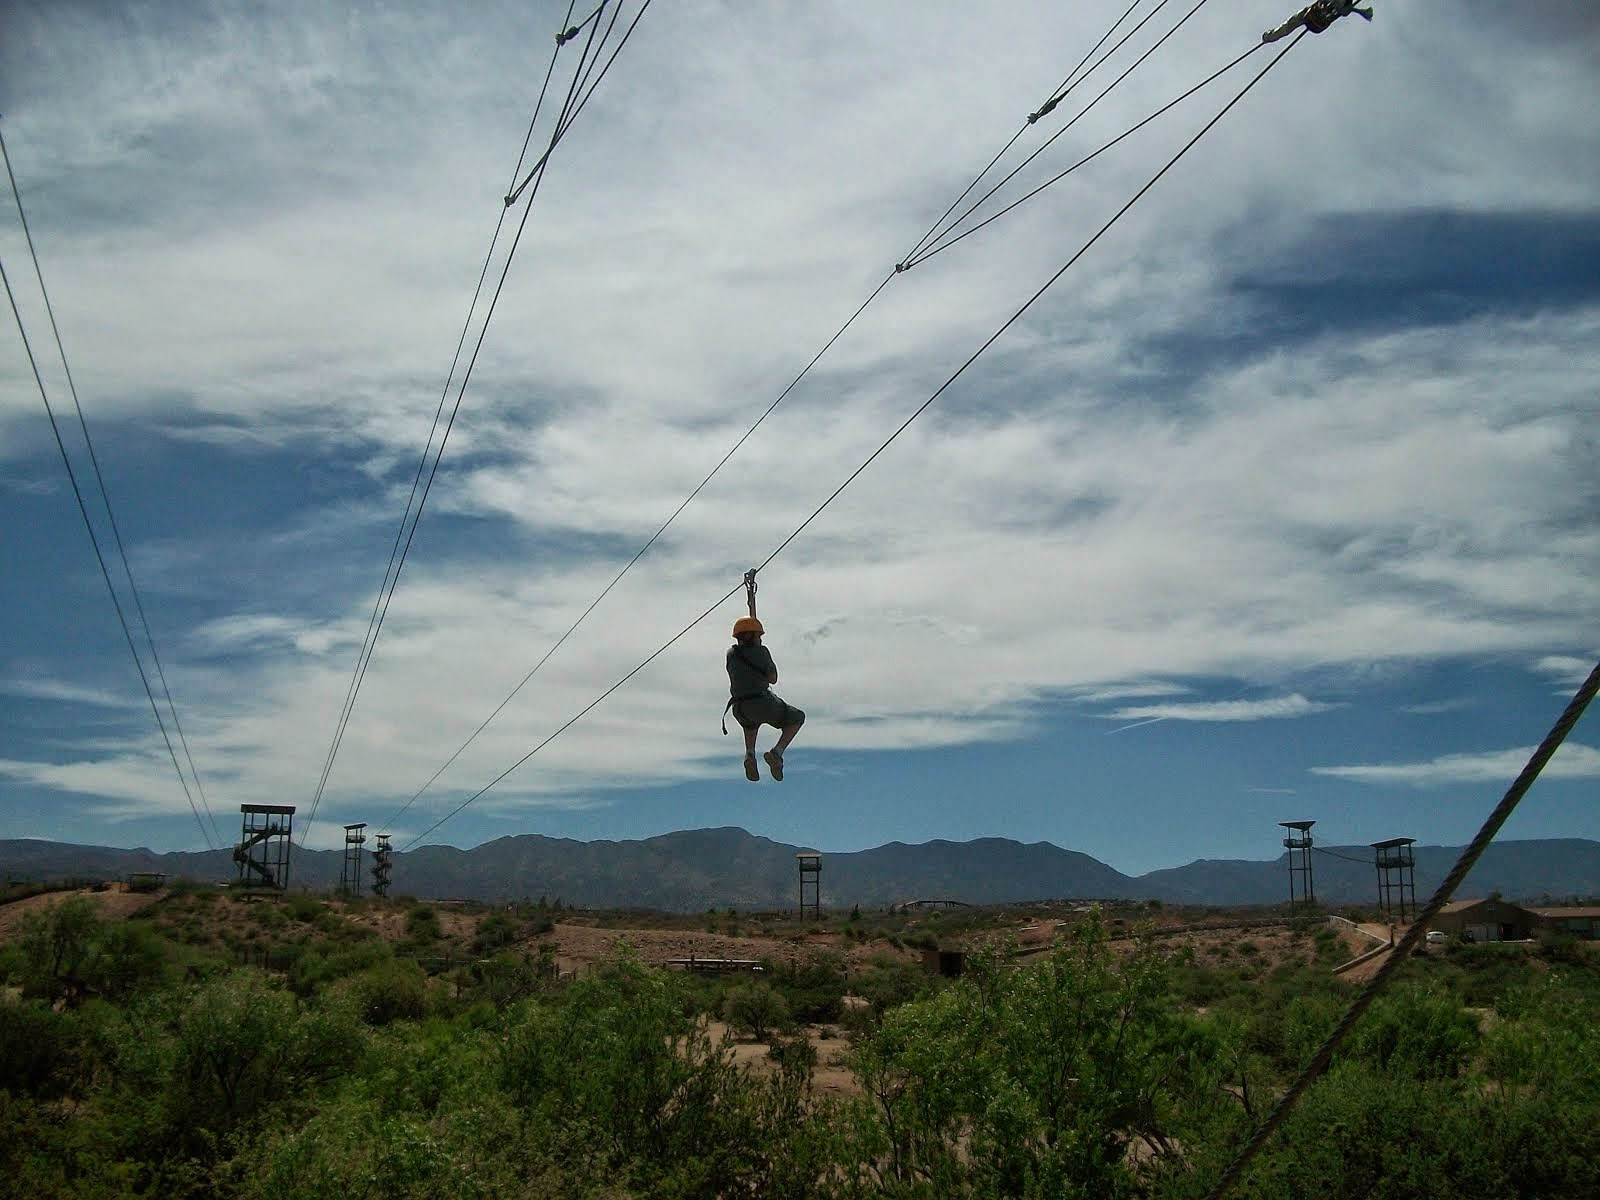 Jake coming down the zipline